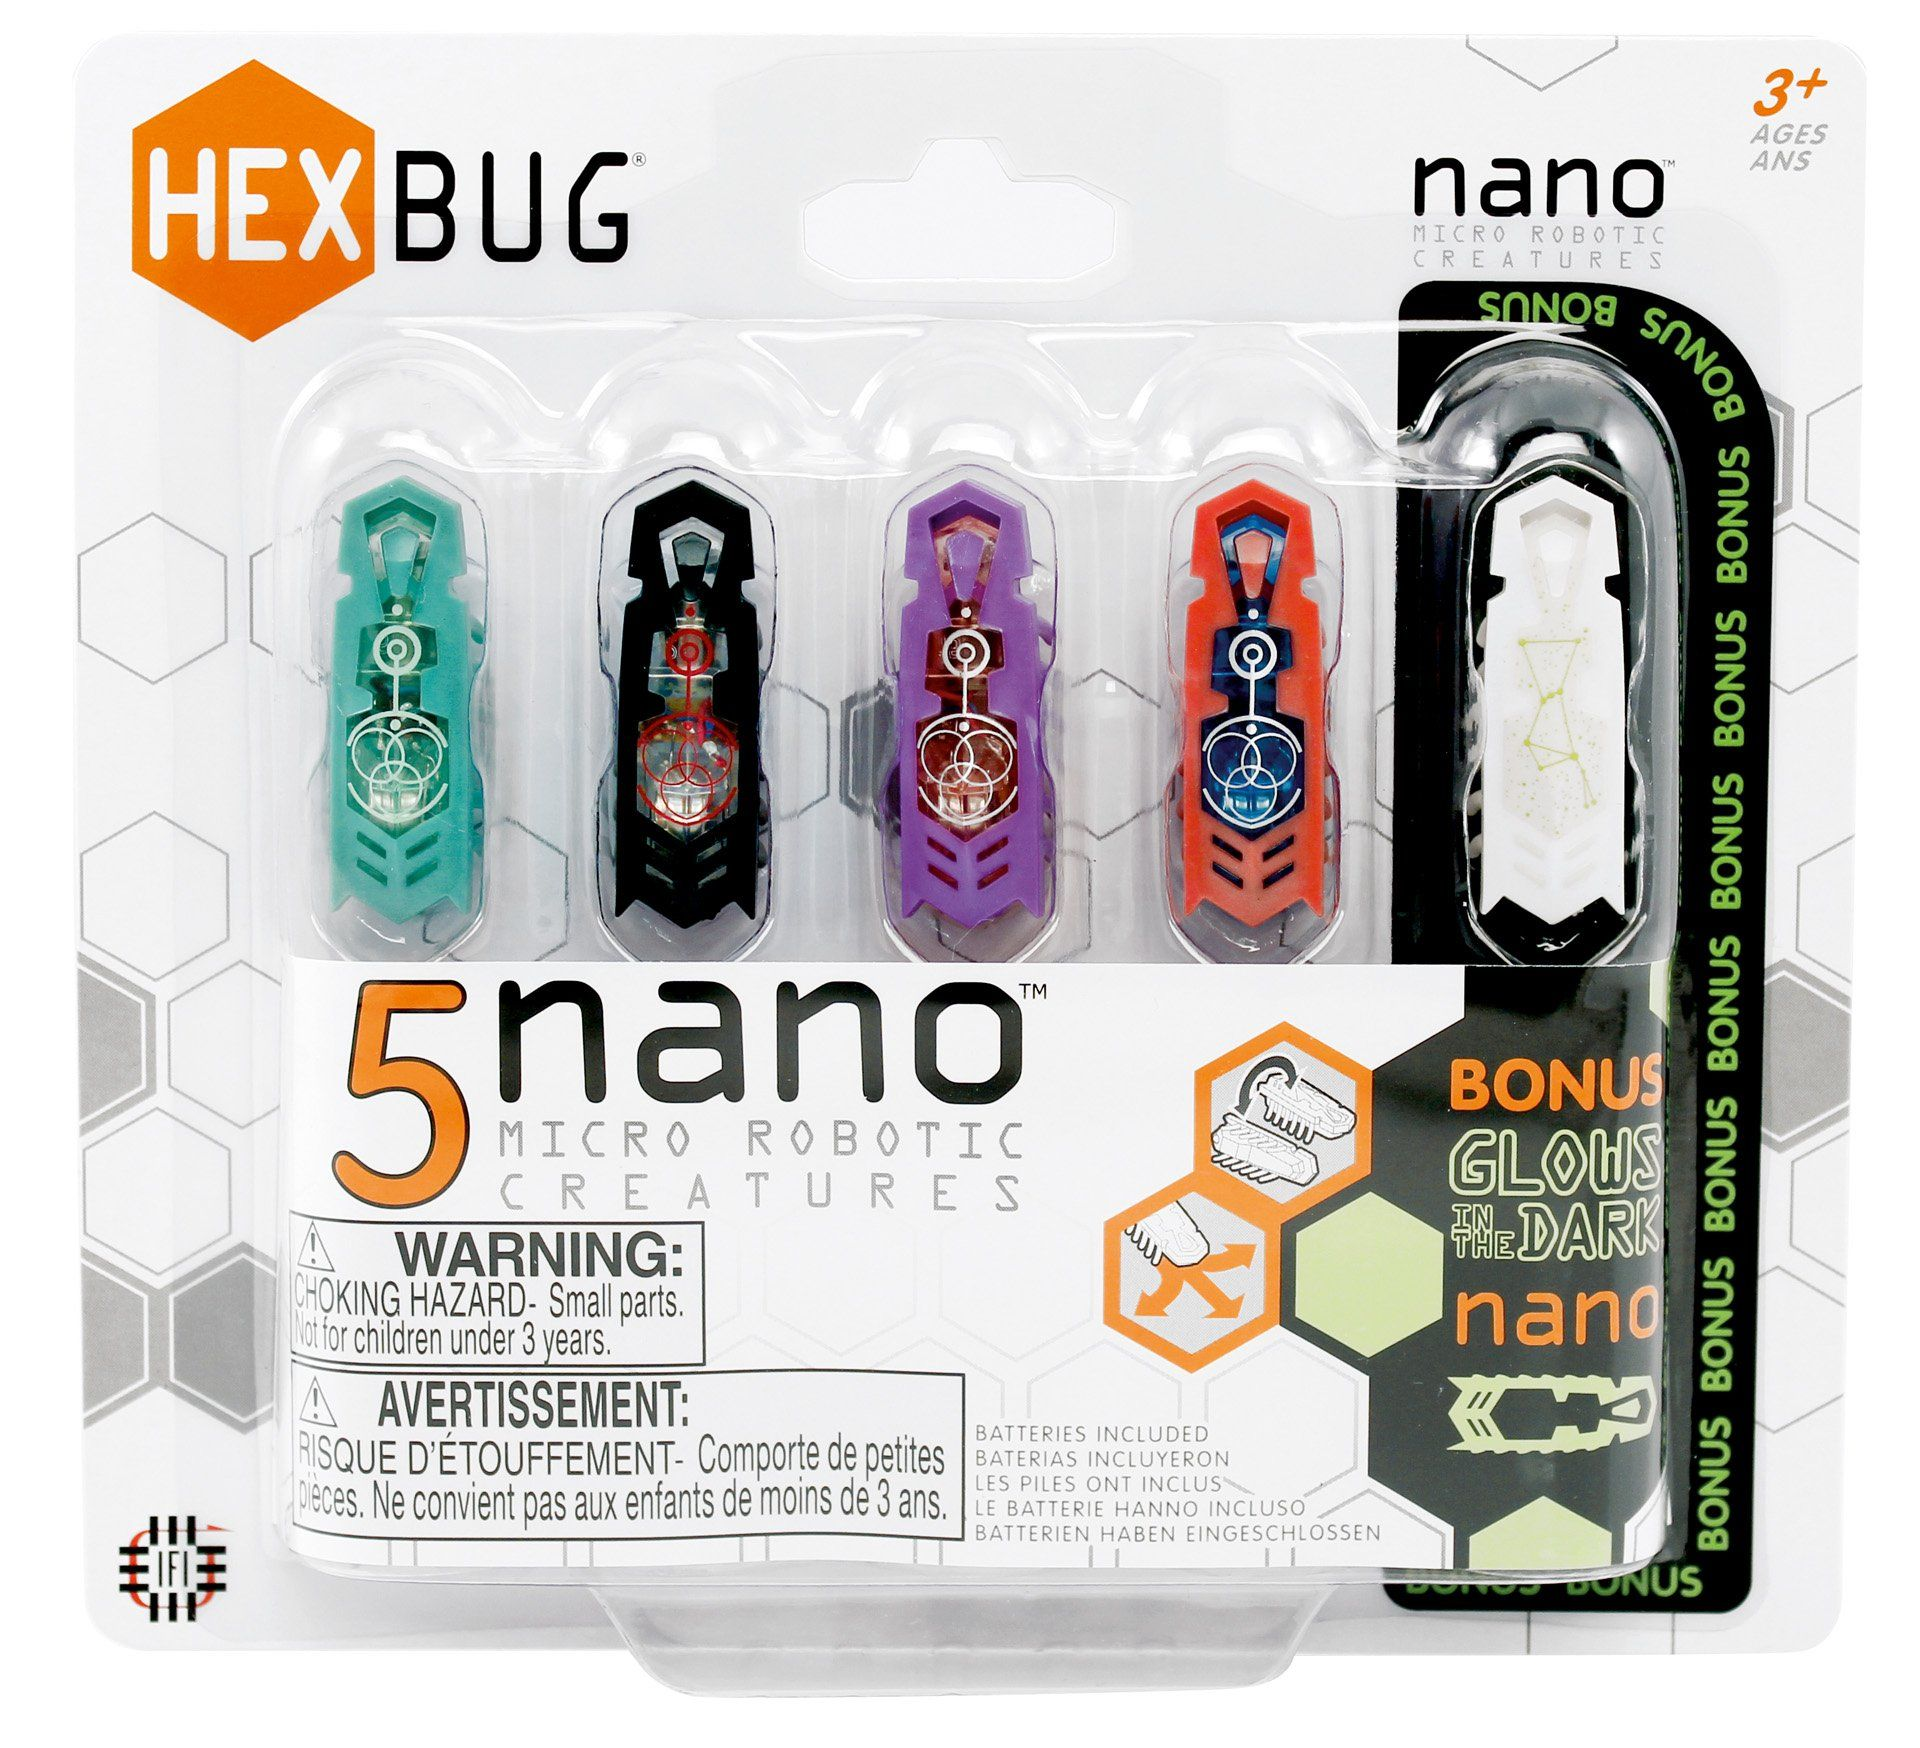 Hexbug Nano 5 Pack Colors May Vary Super Stem Products For Elenco Snap Circuits Lights Walmartcom